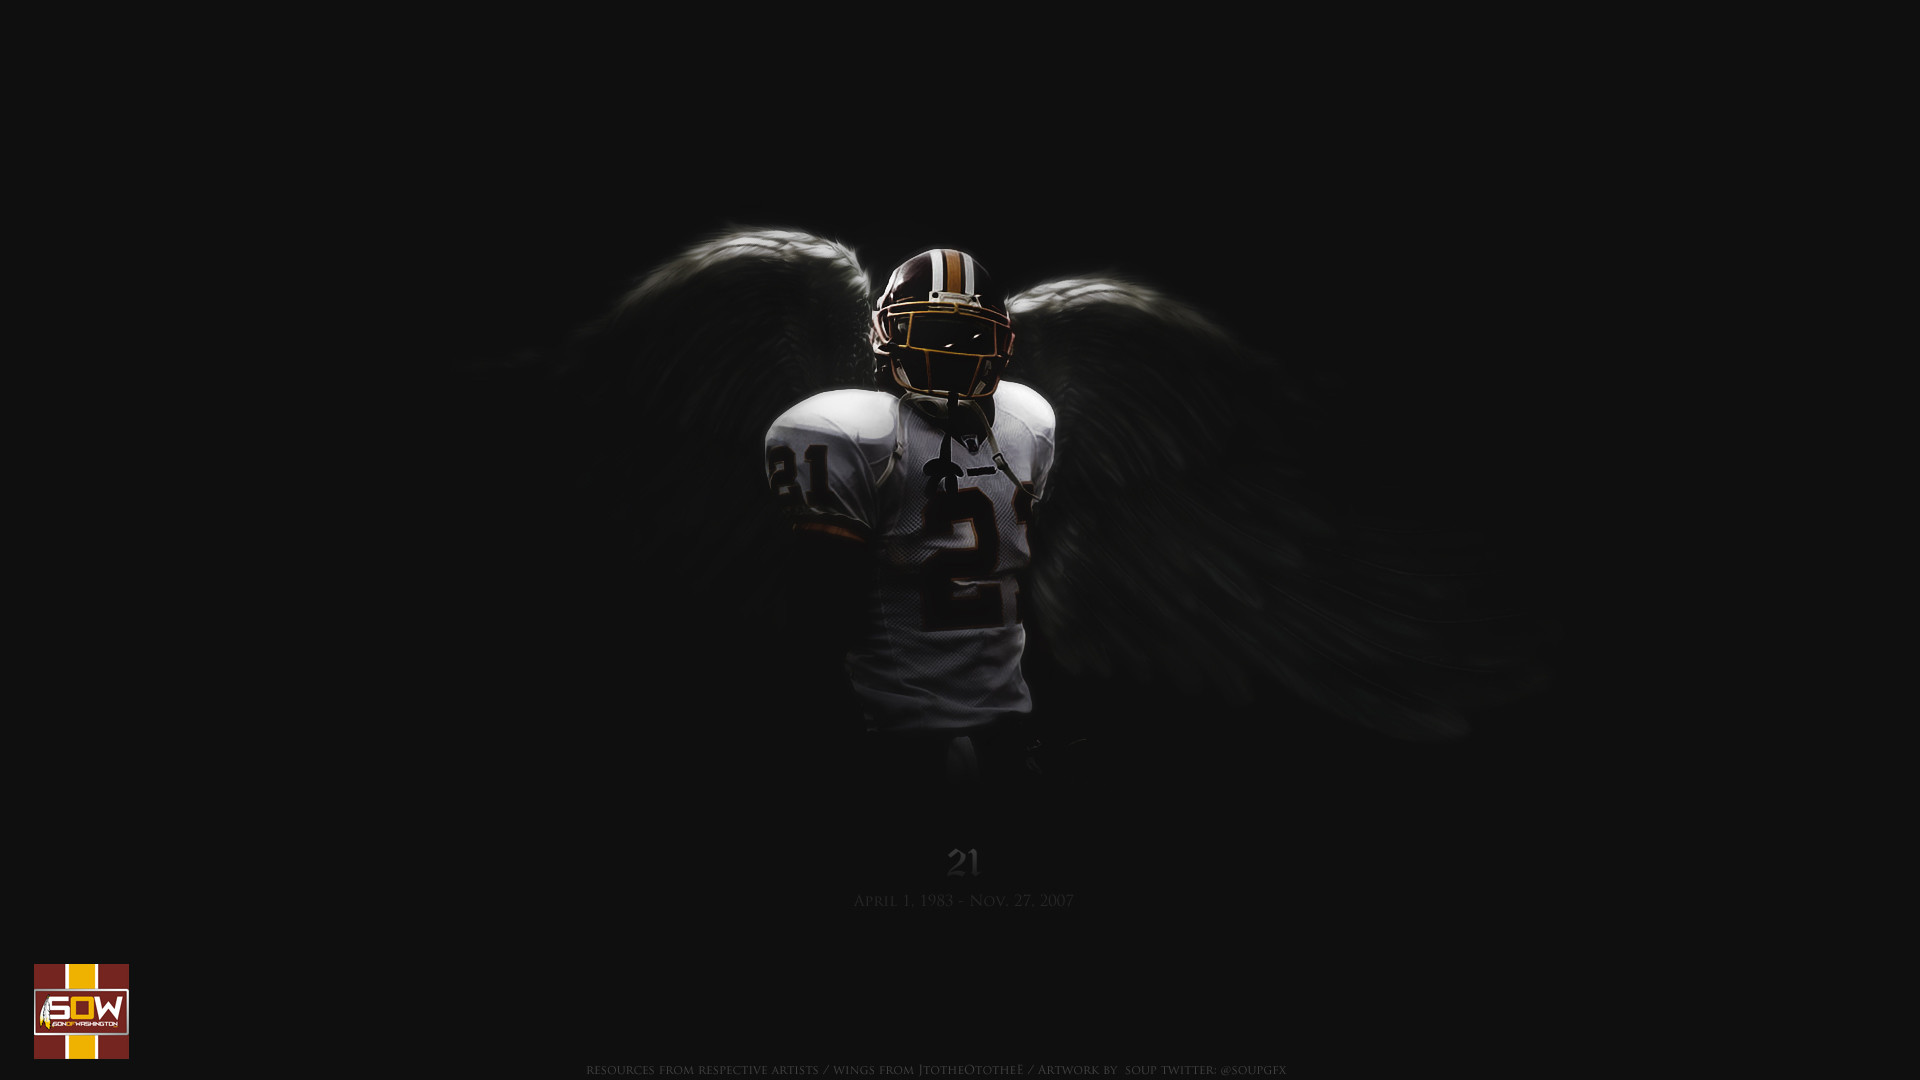 1920x1080 Redskins Wallpaper by SoxFan on DeviantArt Redskins Wallpaper